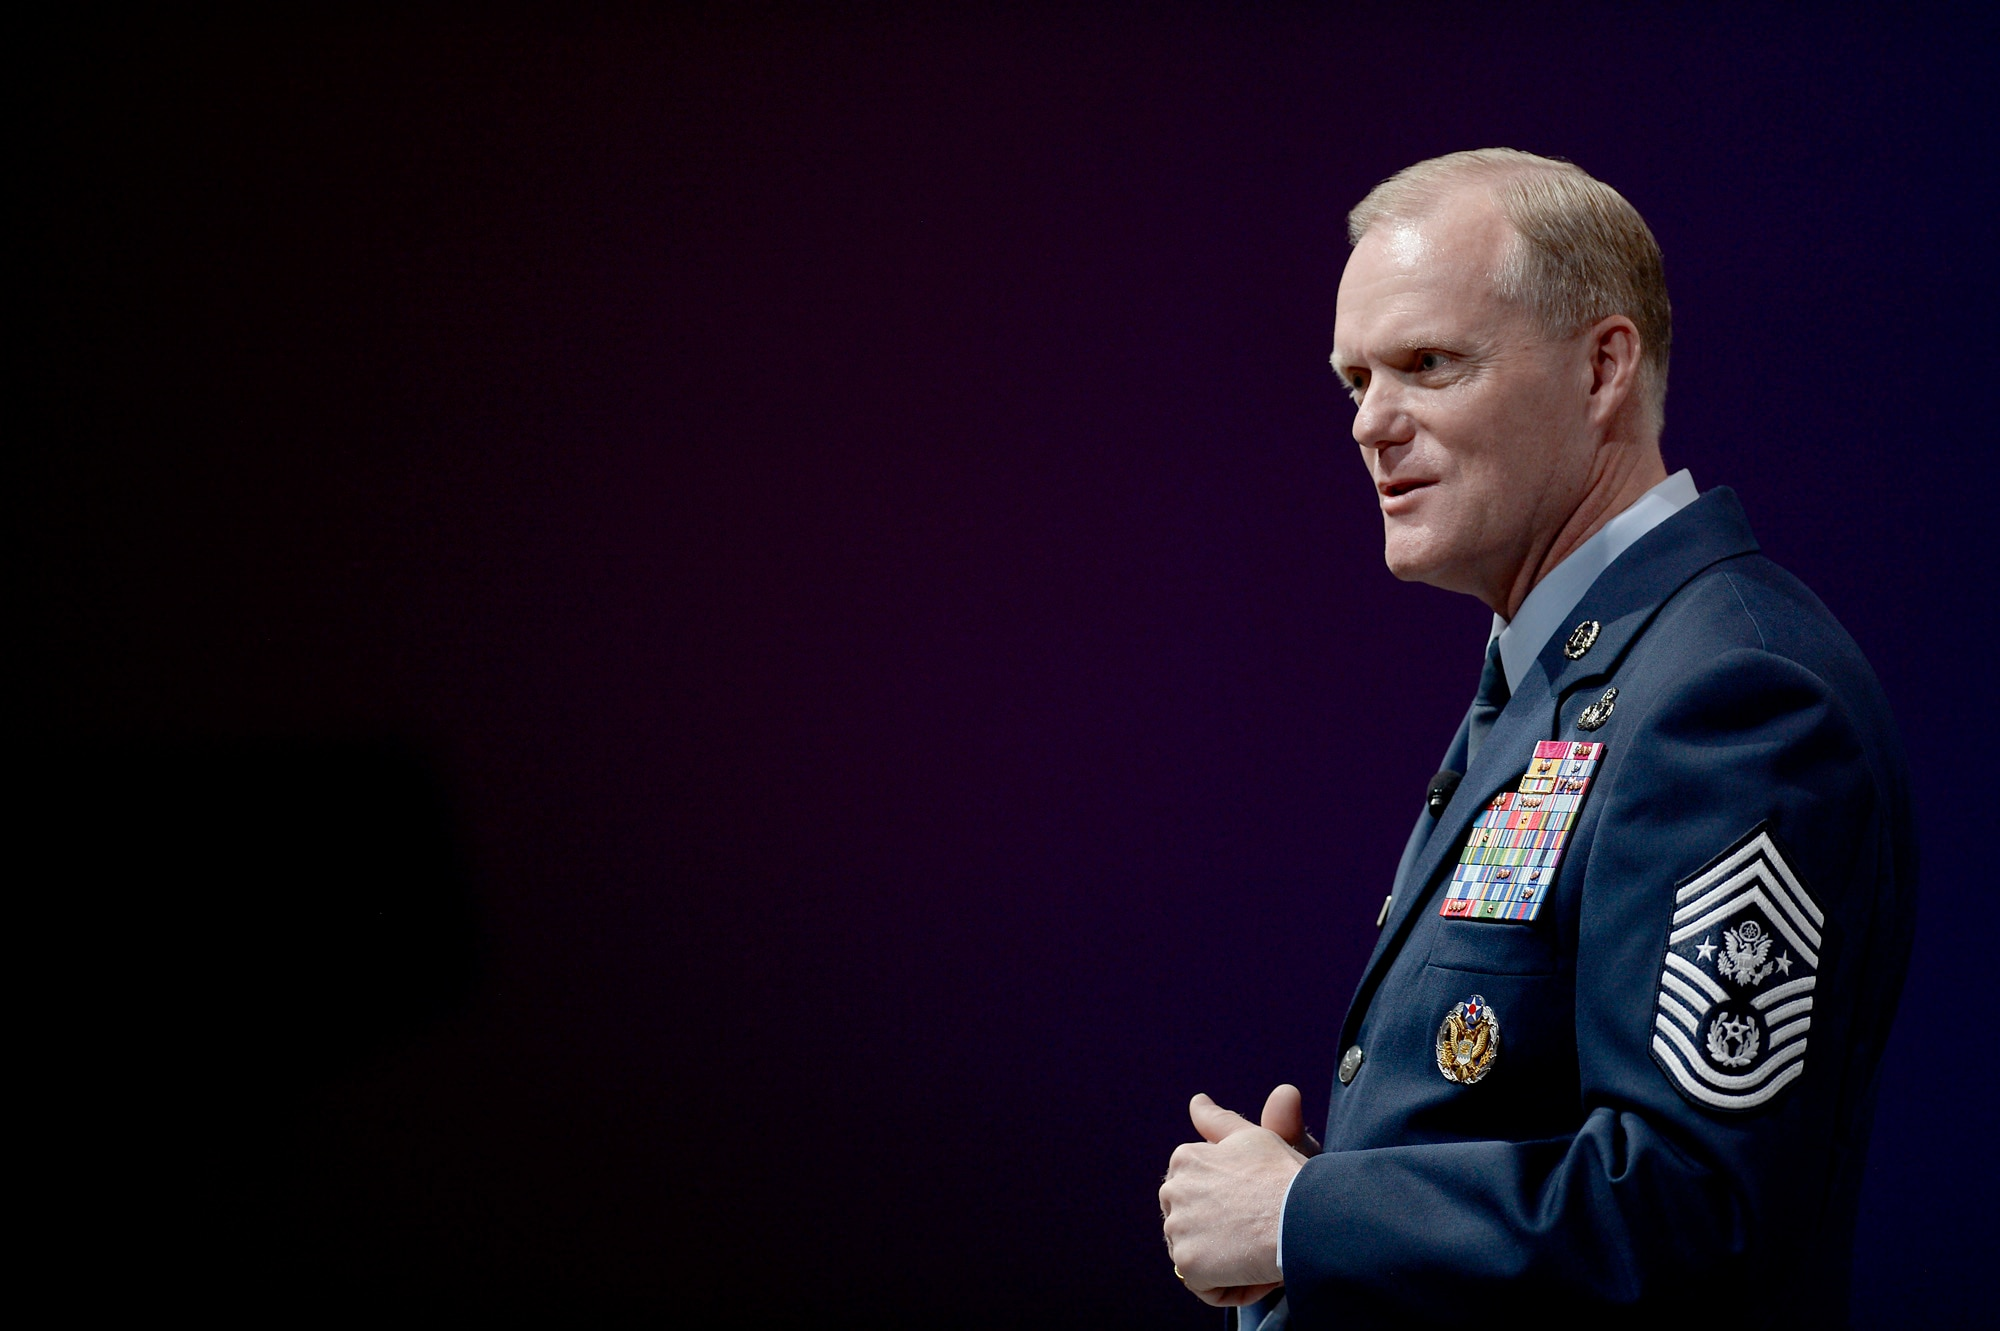 Chief Master Sgt. of the Air Force James A. Cody gives his enlisted perspective during the Air Force Association's Air Warfare Symposium in Orlando, Fla., Feb. 25, 2016.  (U.S. Air Force photo/Scott M. Ash)